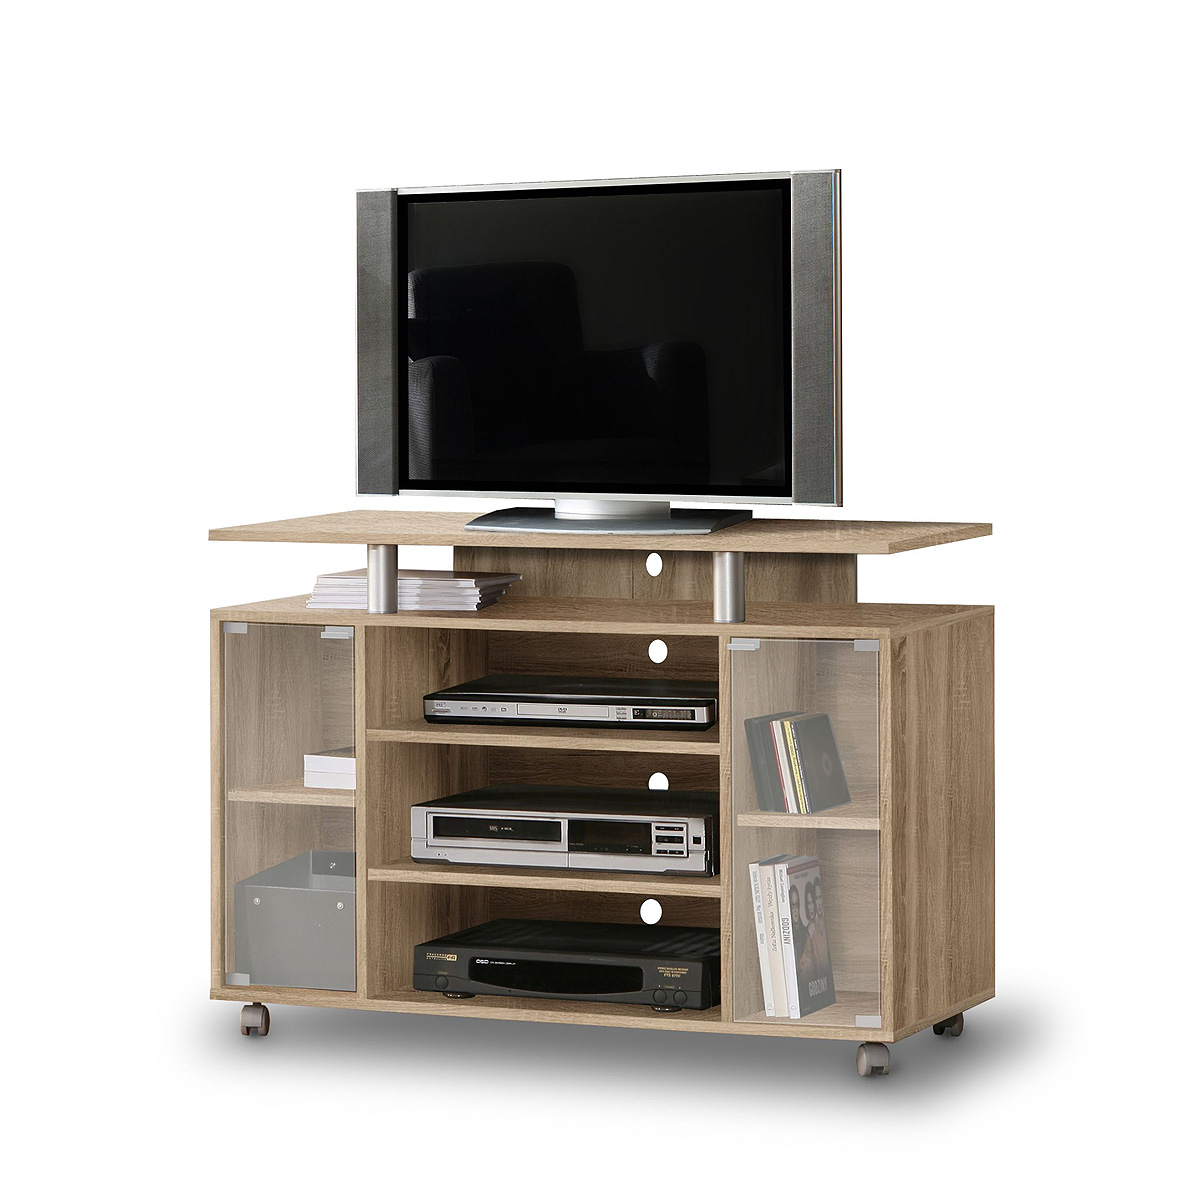 tv kommode selber bauen innenr ume und m bel ideen. Black Bedroom Furniture Sets. Home Design Ideas